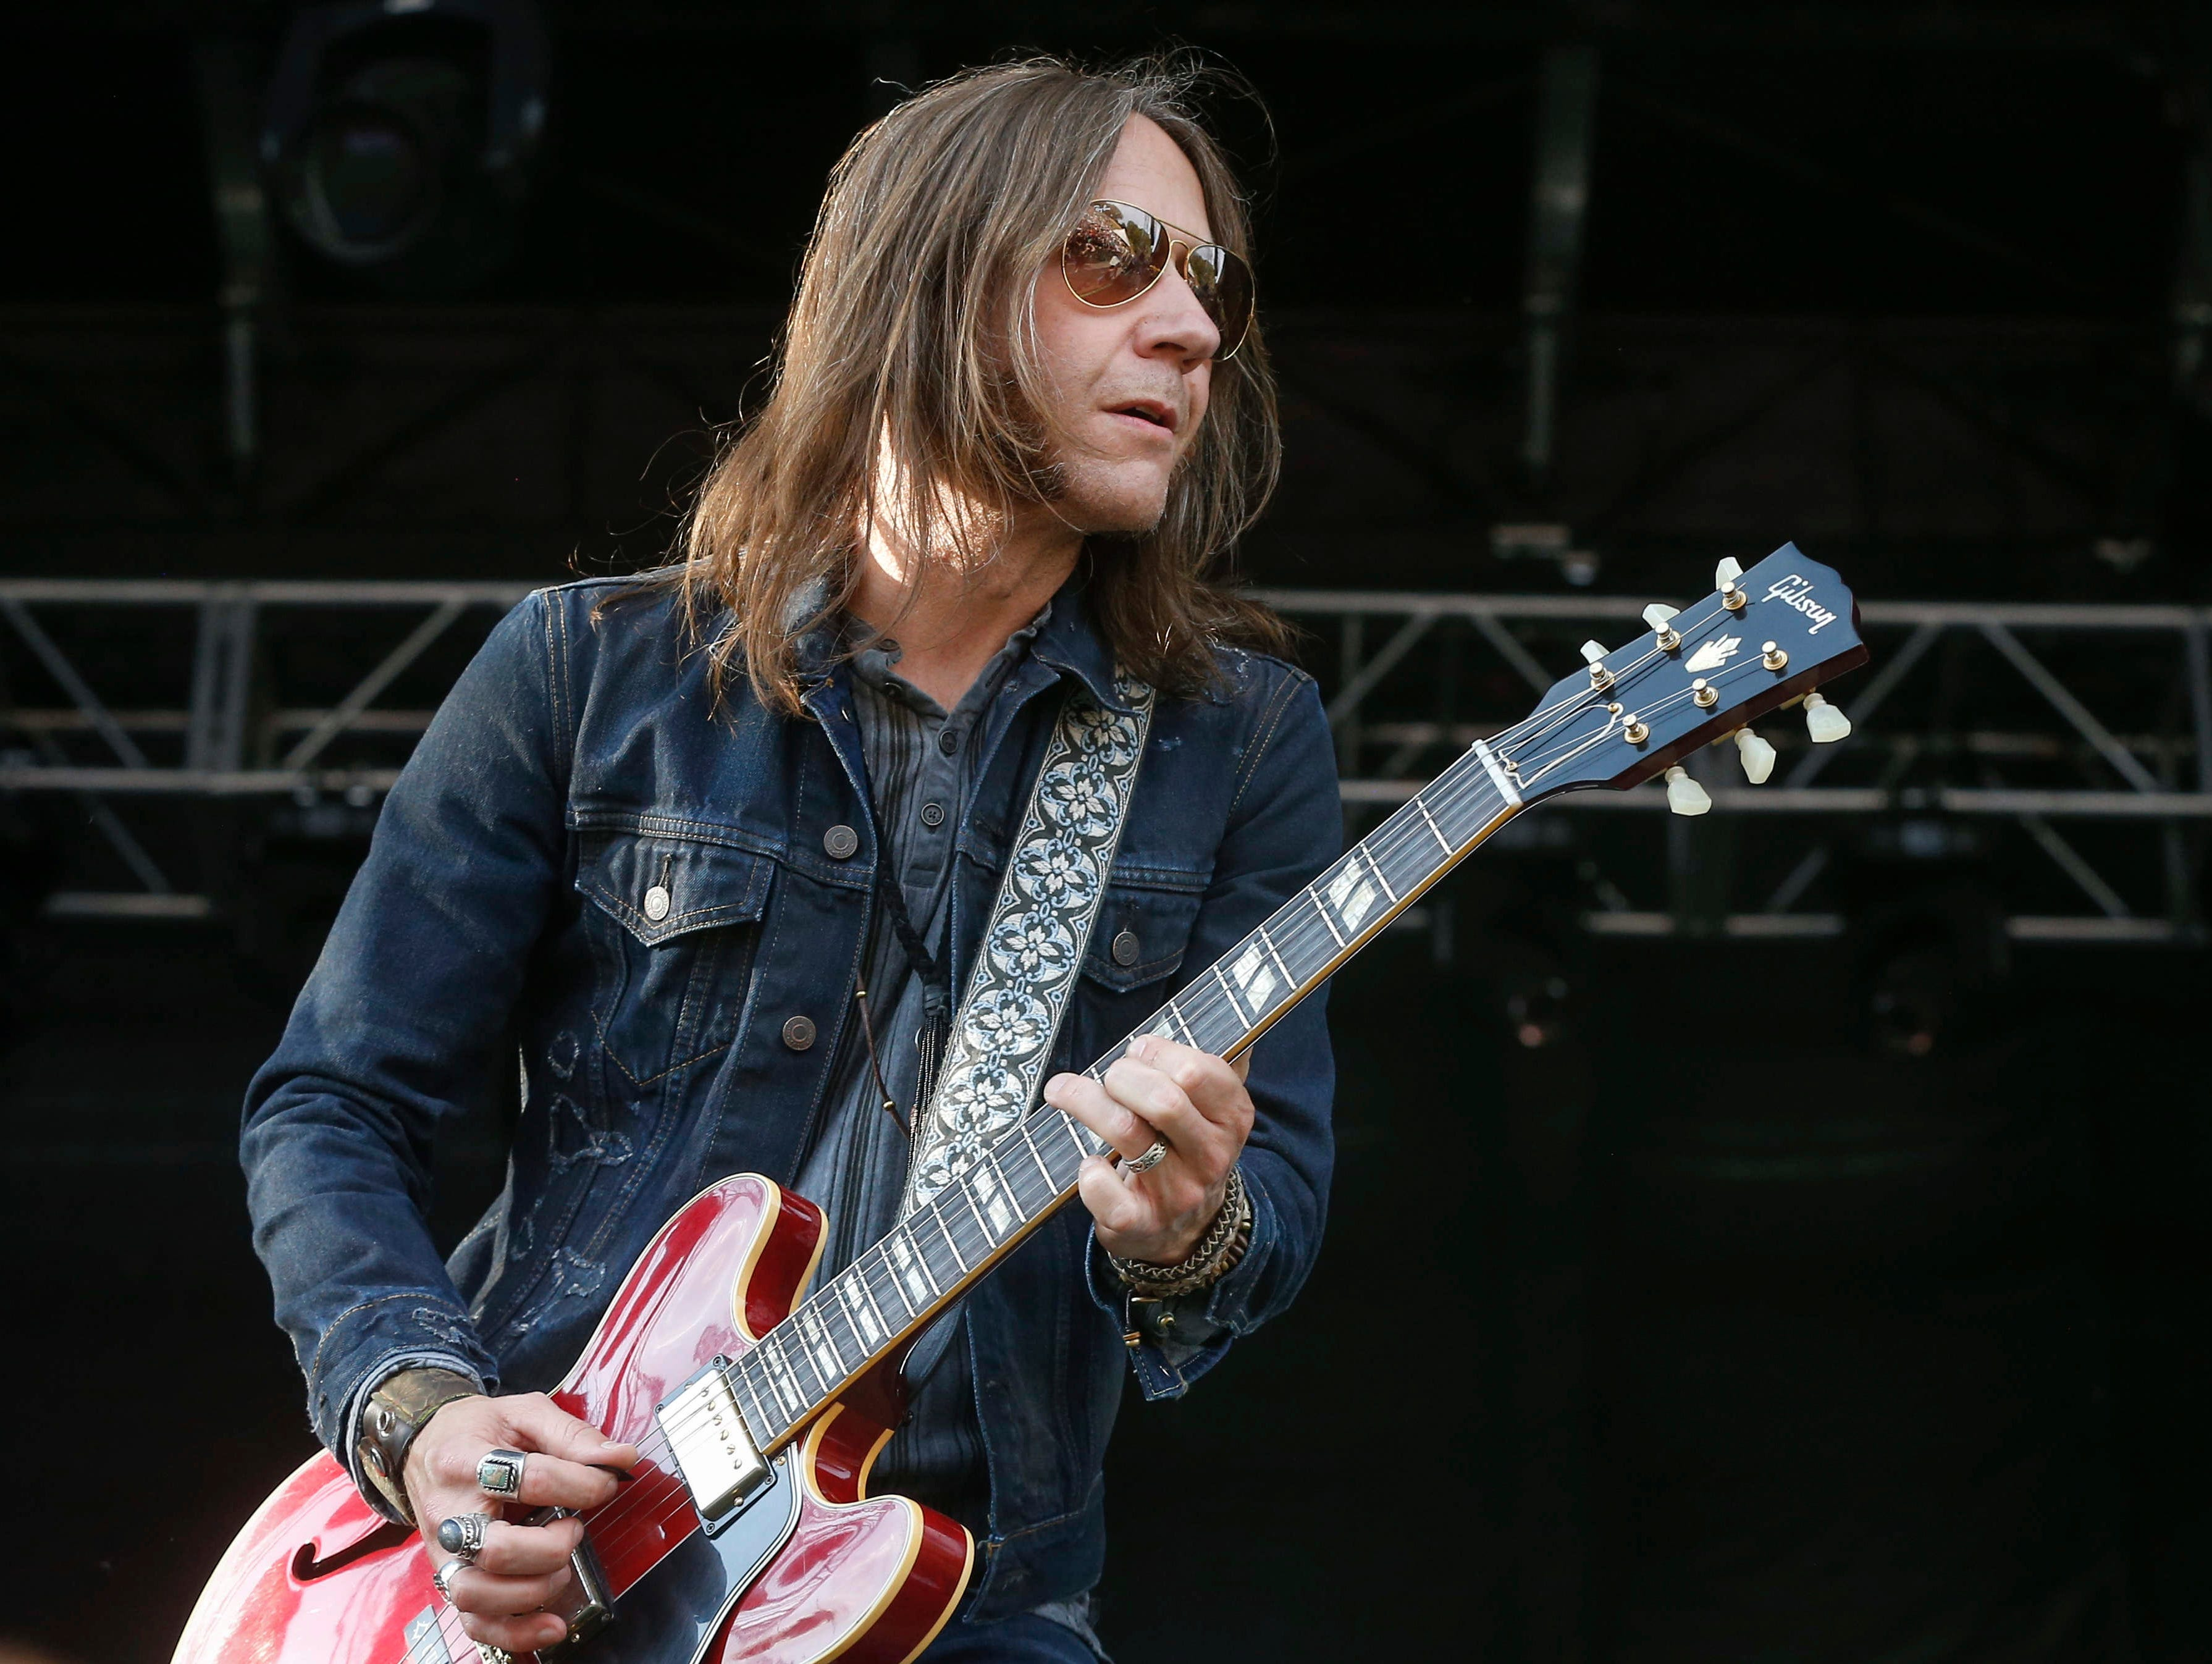 Blackberry Smoke lead vocalist Charlie Starr performs on Saturday, Aug. 4, 2018, during the Hinterland music festival in St. Charles.